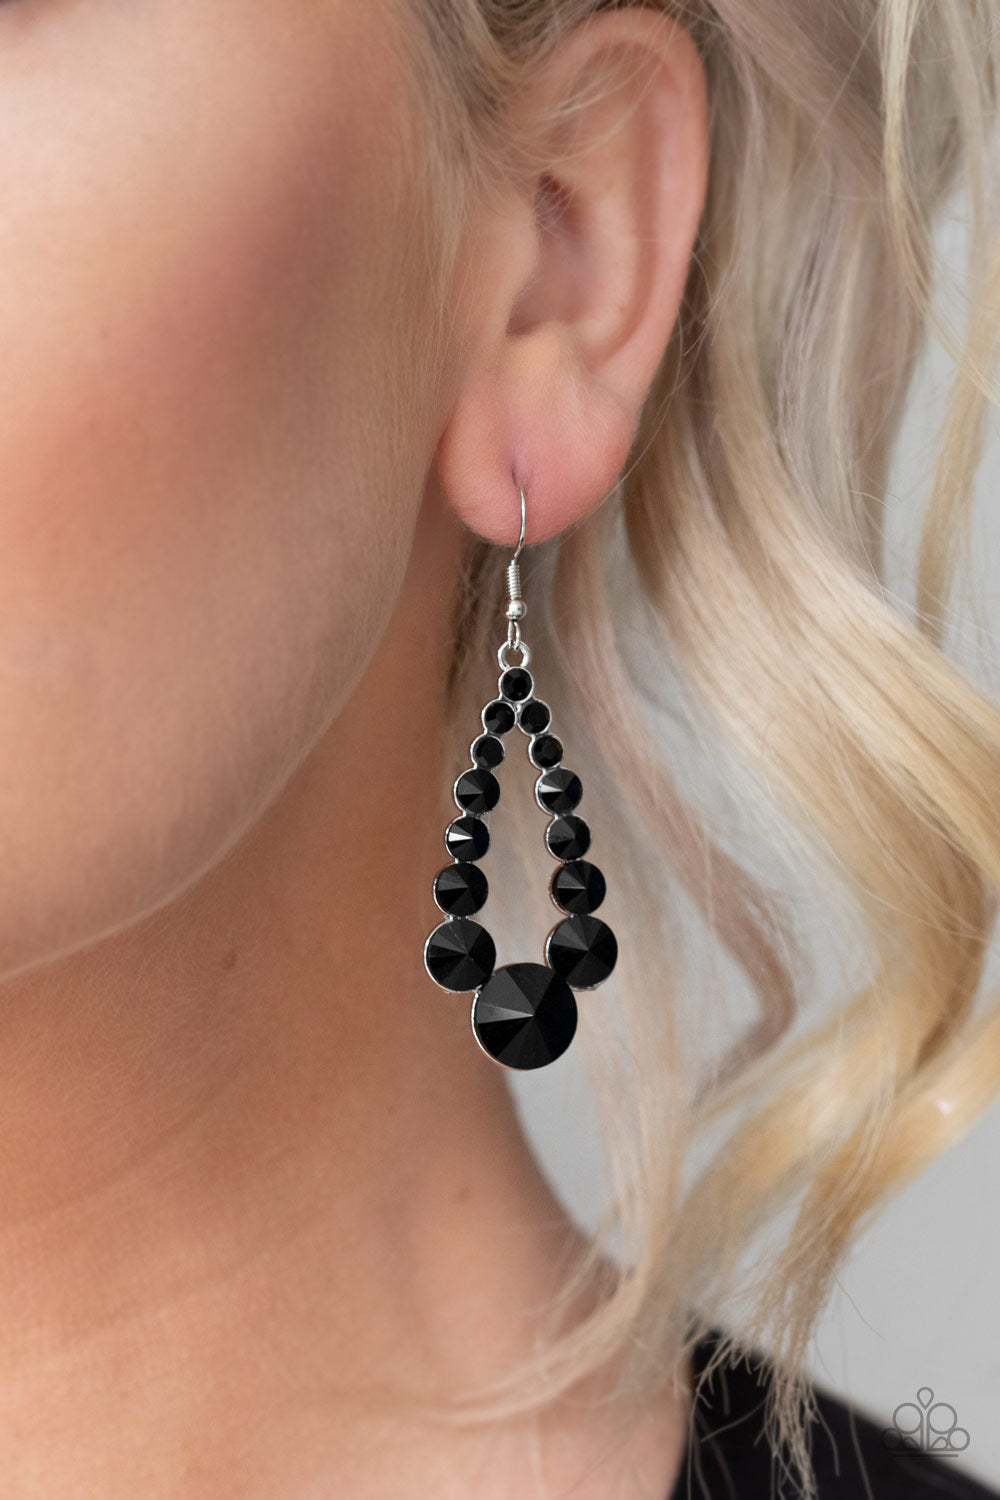 Paparazzi Jewelry & Accessories - Here GLOWS Nothing! - Black Earrings. Bling By Titia Boutique